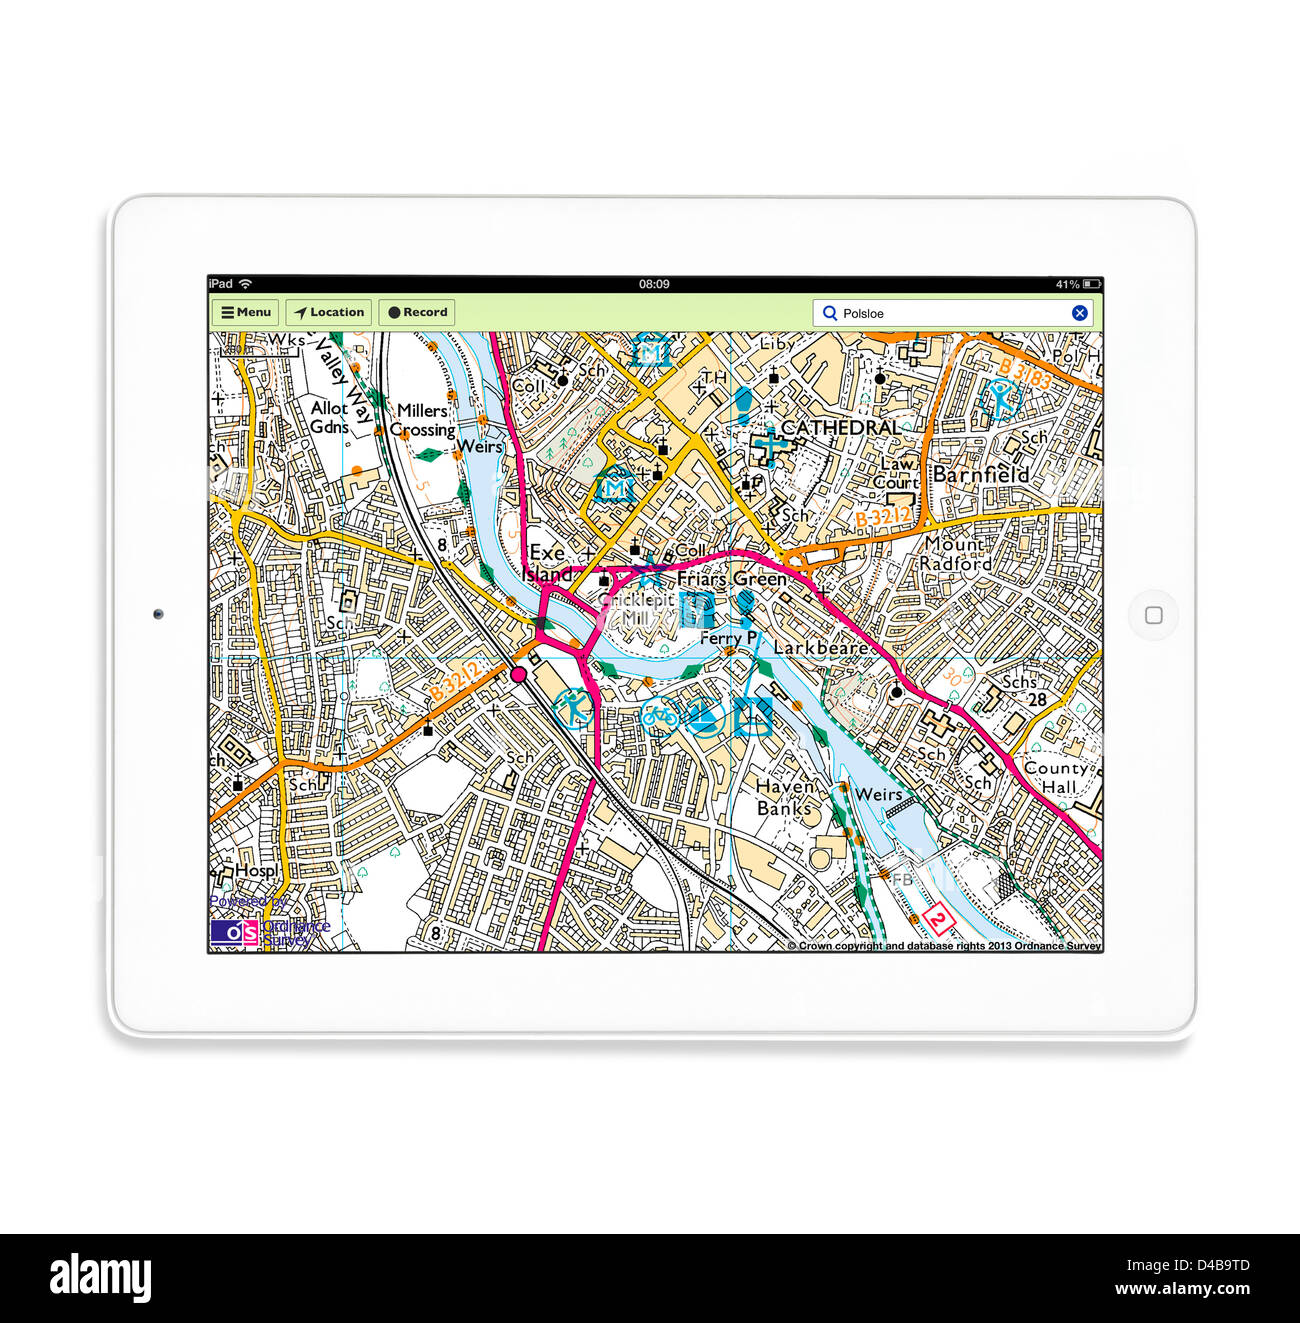 using the os mapfinder app on a 4th generation apple ipad tablet computer stock image